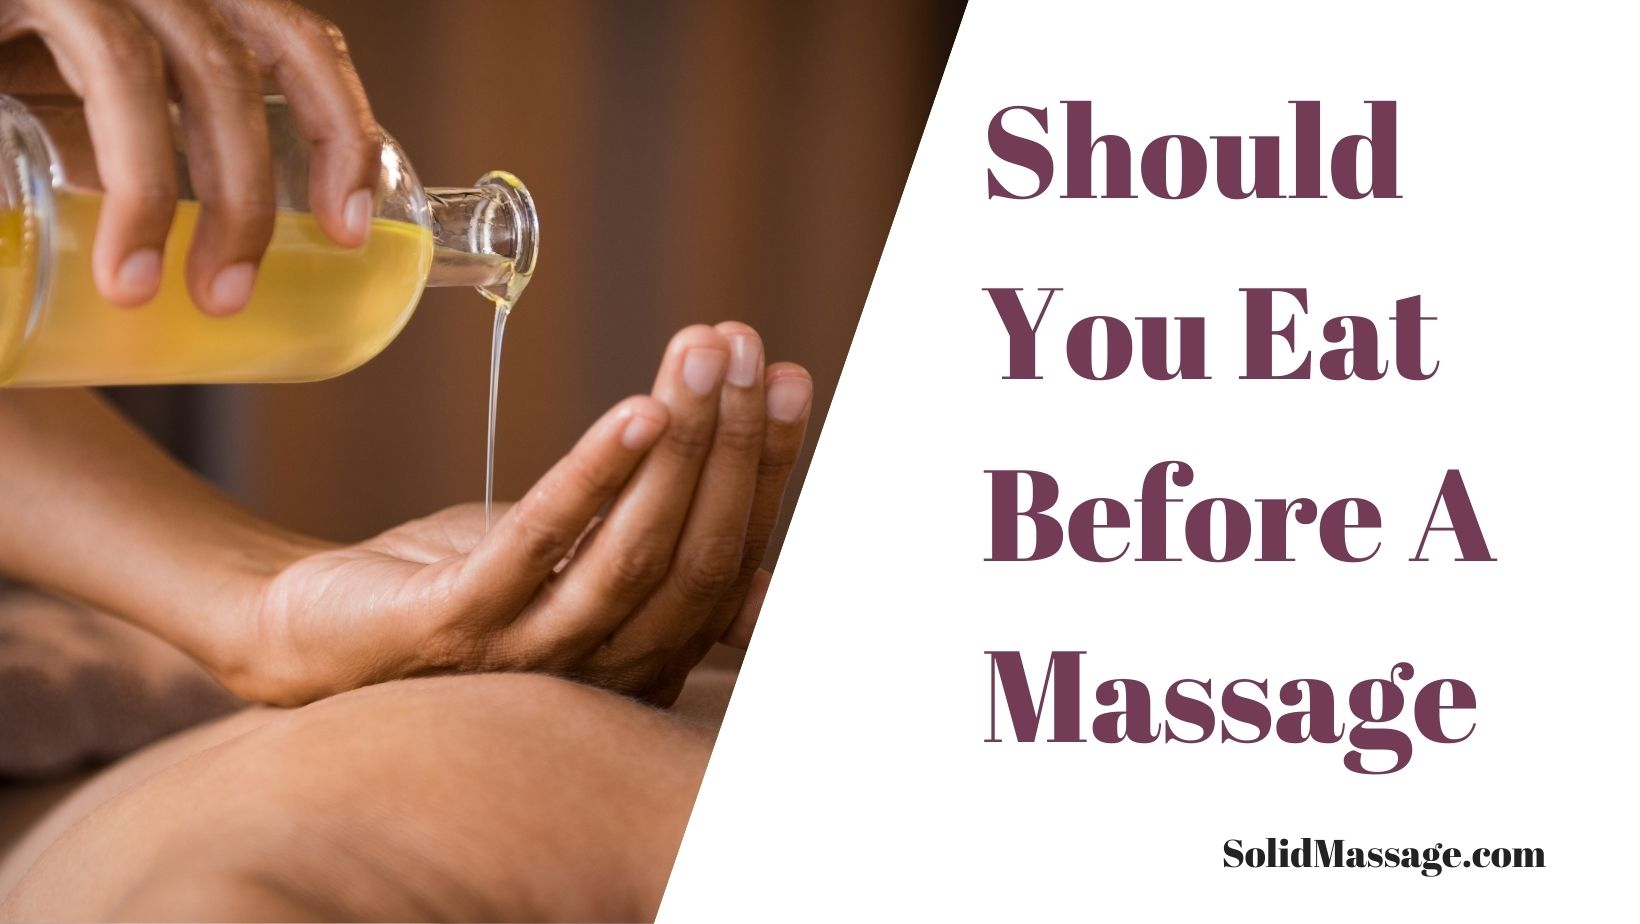 Should You Eat Before A Massage